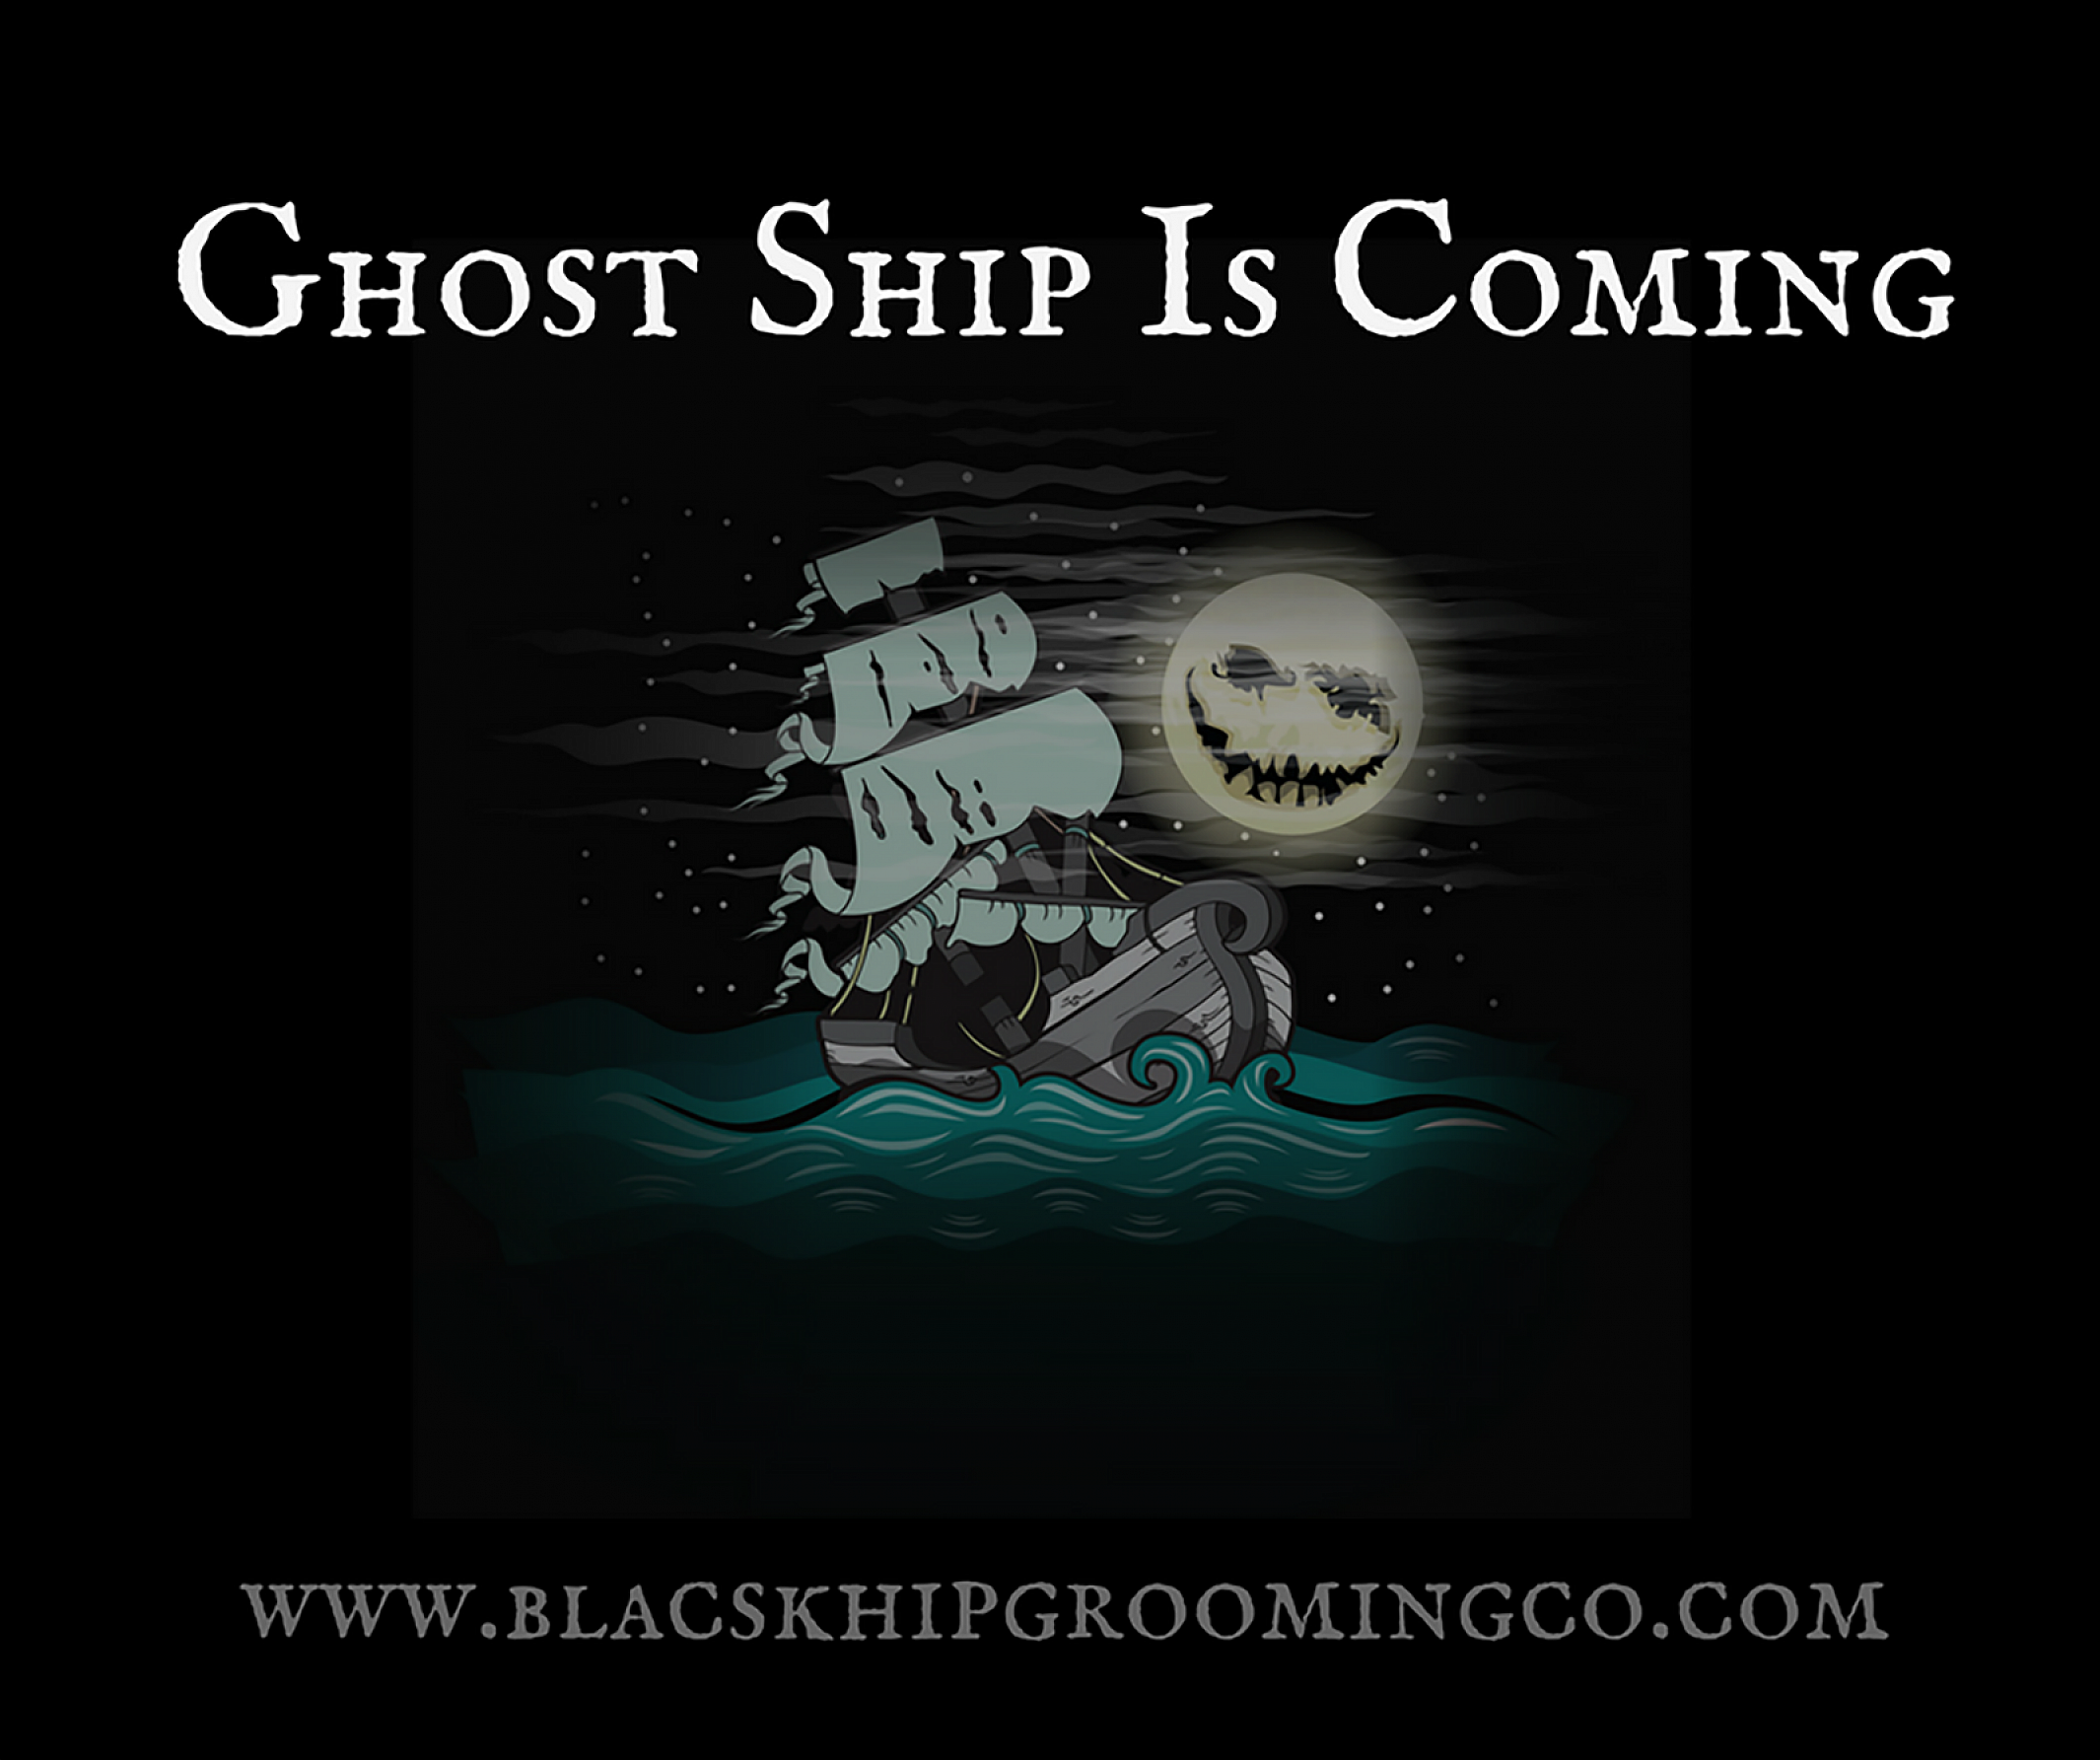 "Bacl Ship Grooming Co. ""Ghost Ship"""